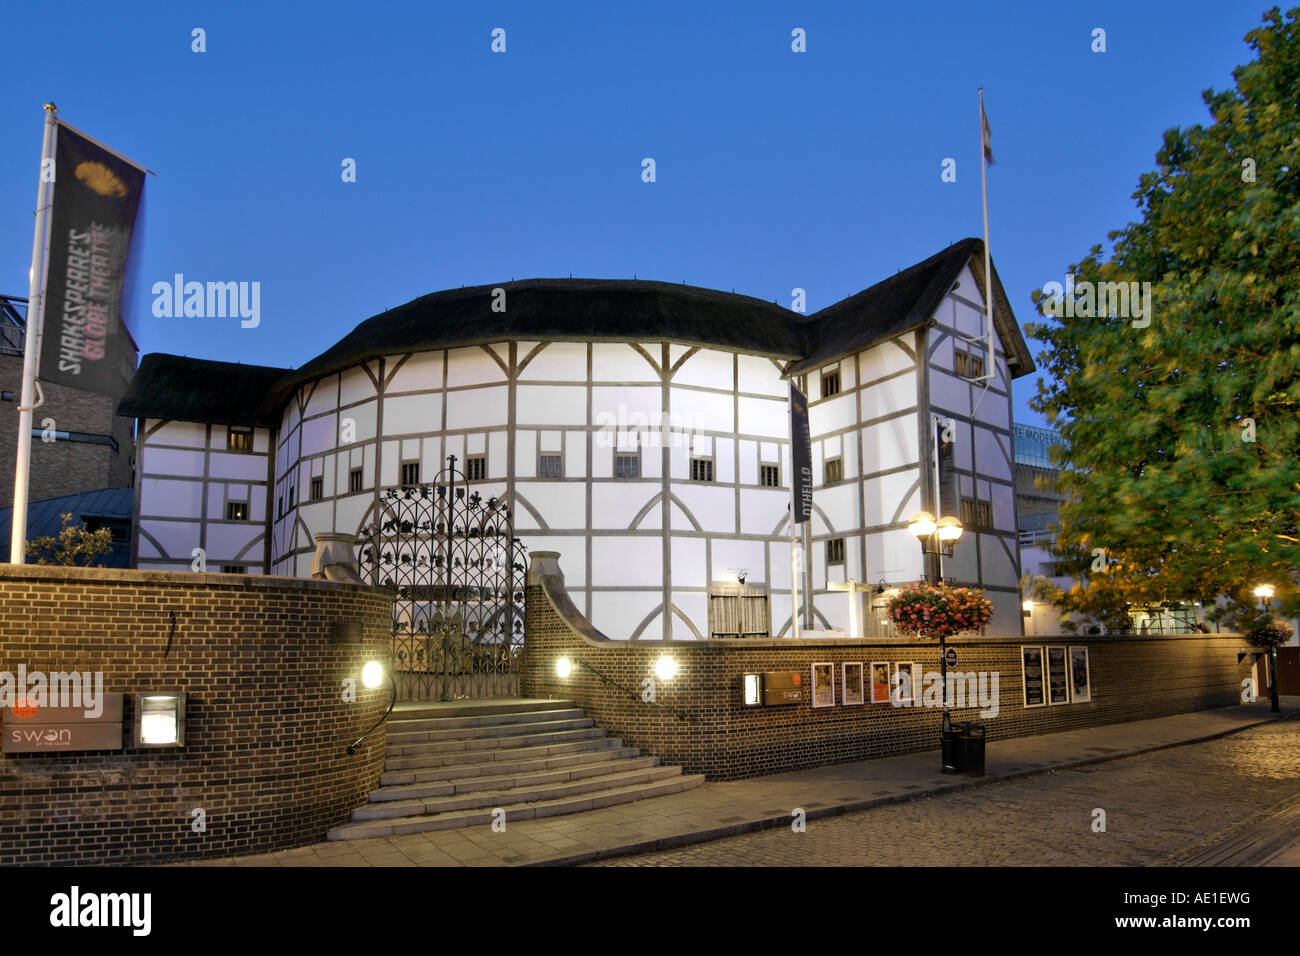 Dusk view of Shakespeareu0027s Globe theatre on the south bank of the Thames river in London & Dusk view of Shakespeareu0027s Globe theatre on the south bank of the ... azcodes.com